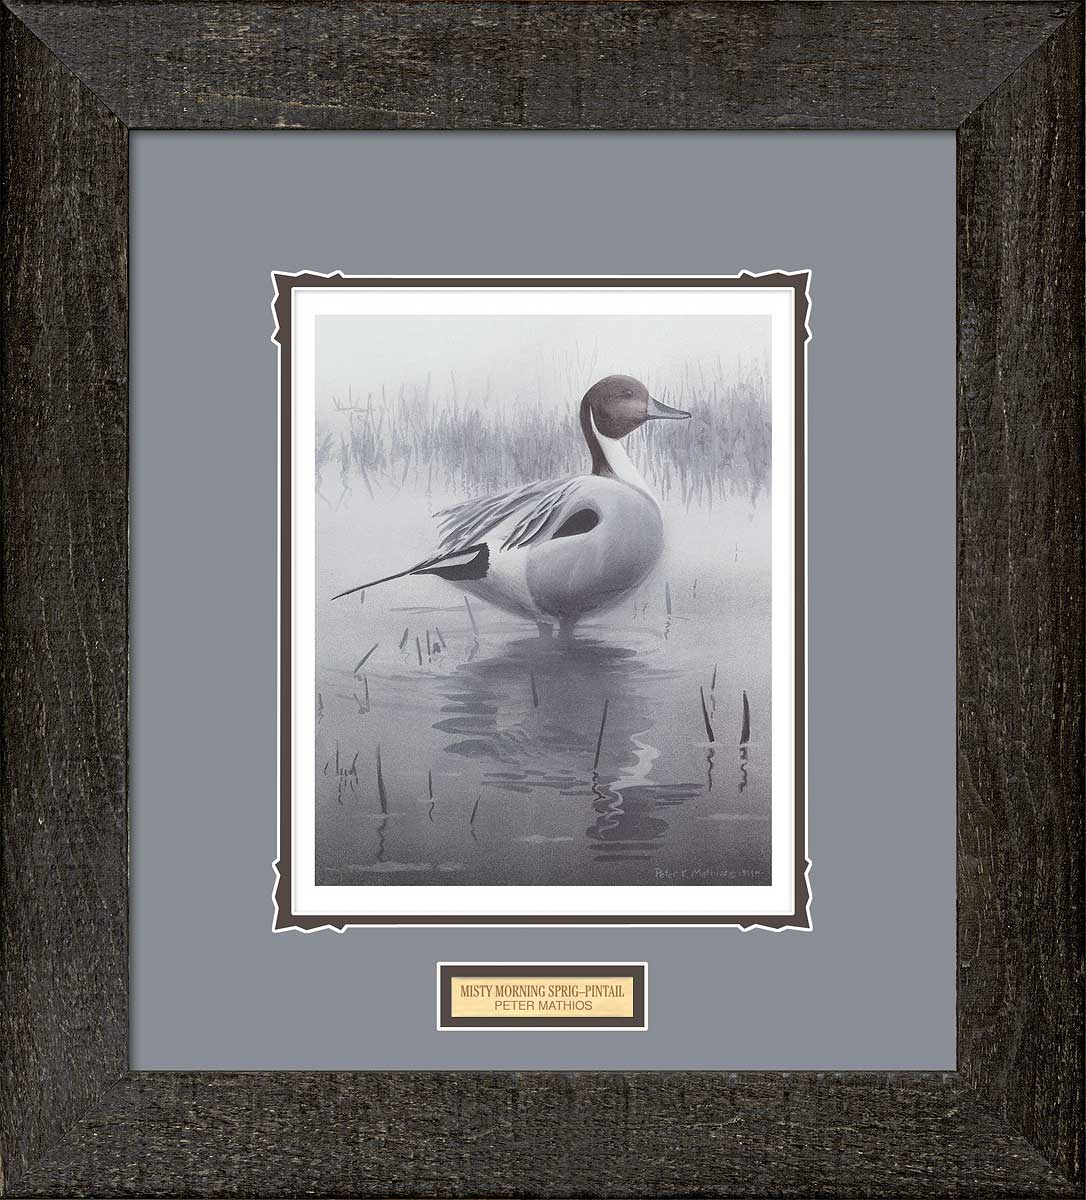 <i>Misty Morning Sprig&mdash;Pintail</i>